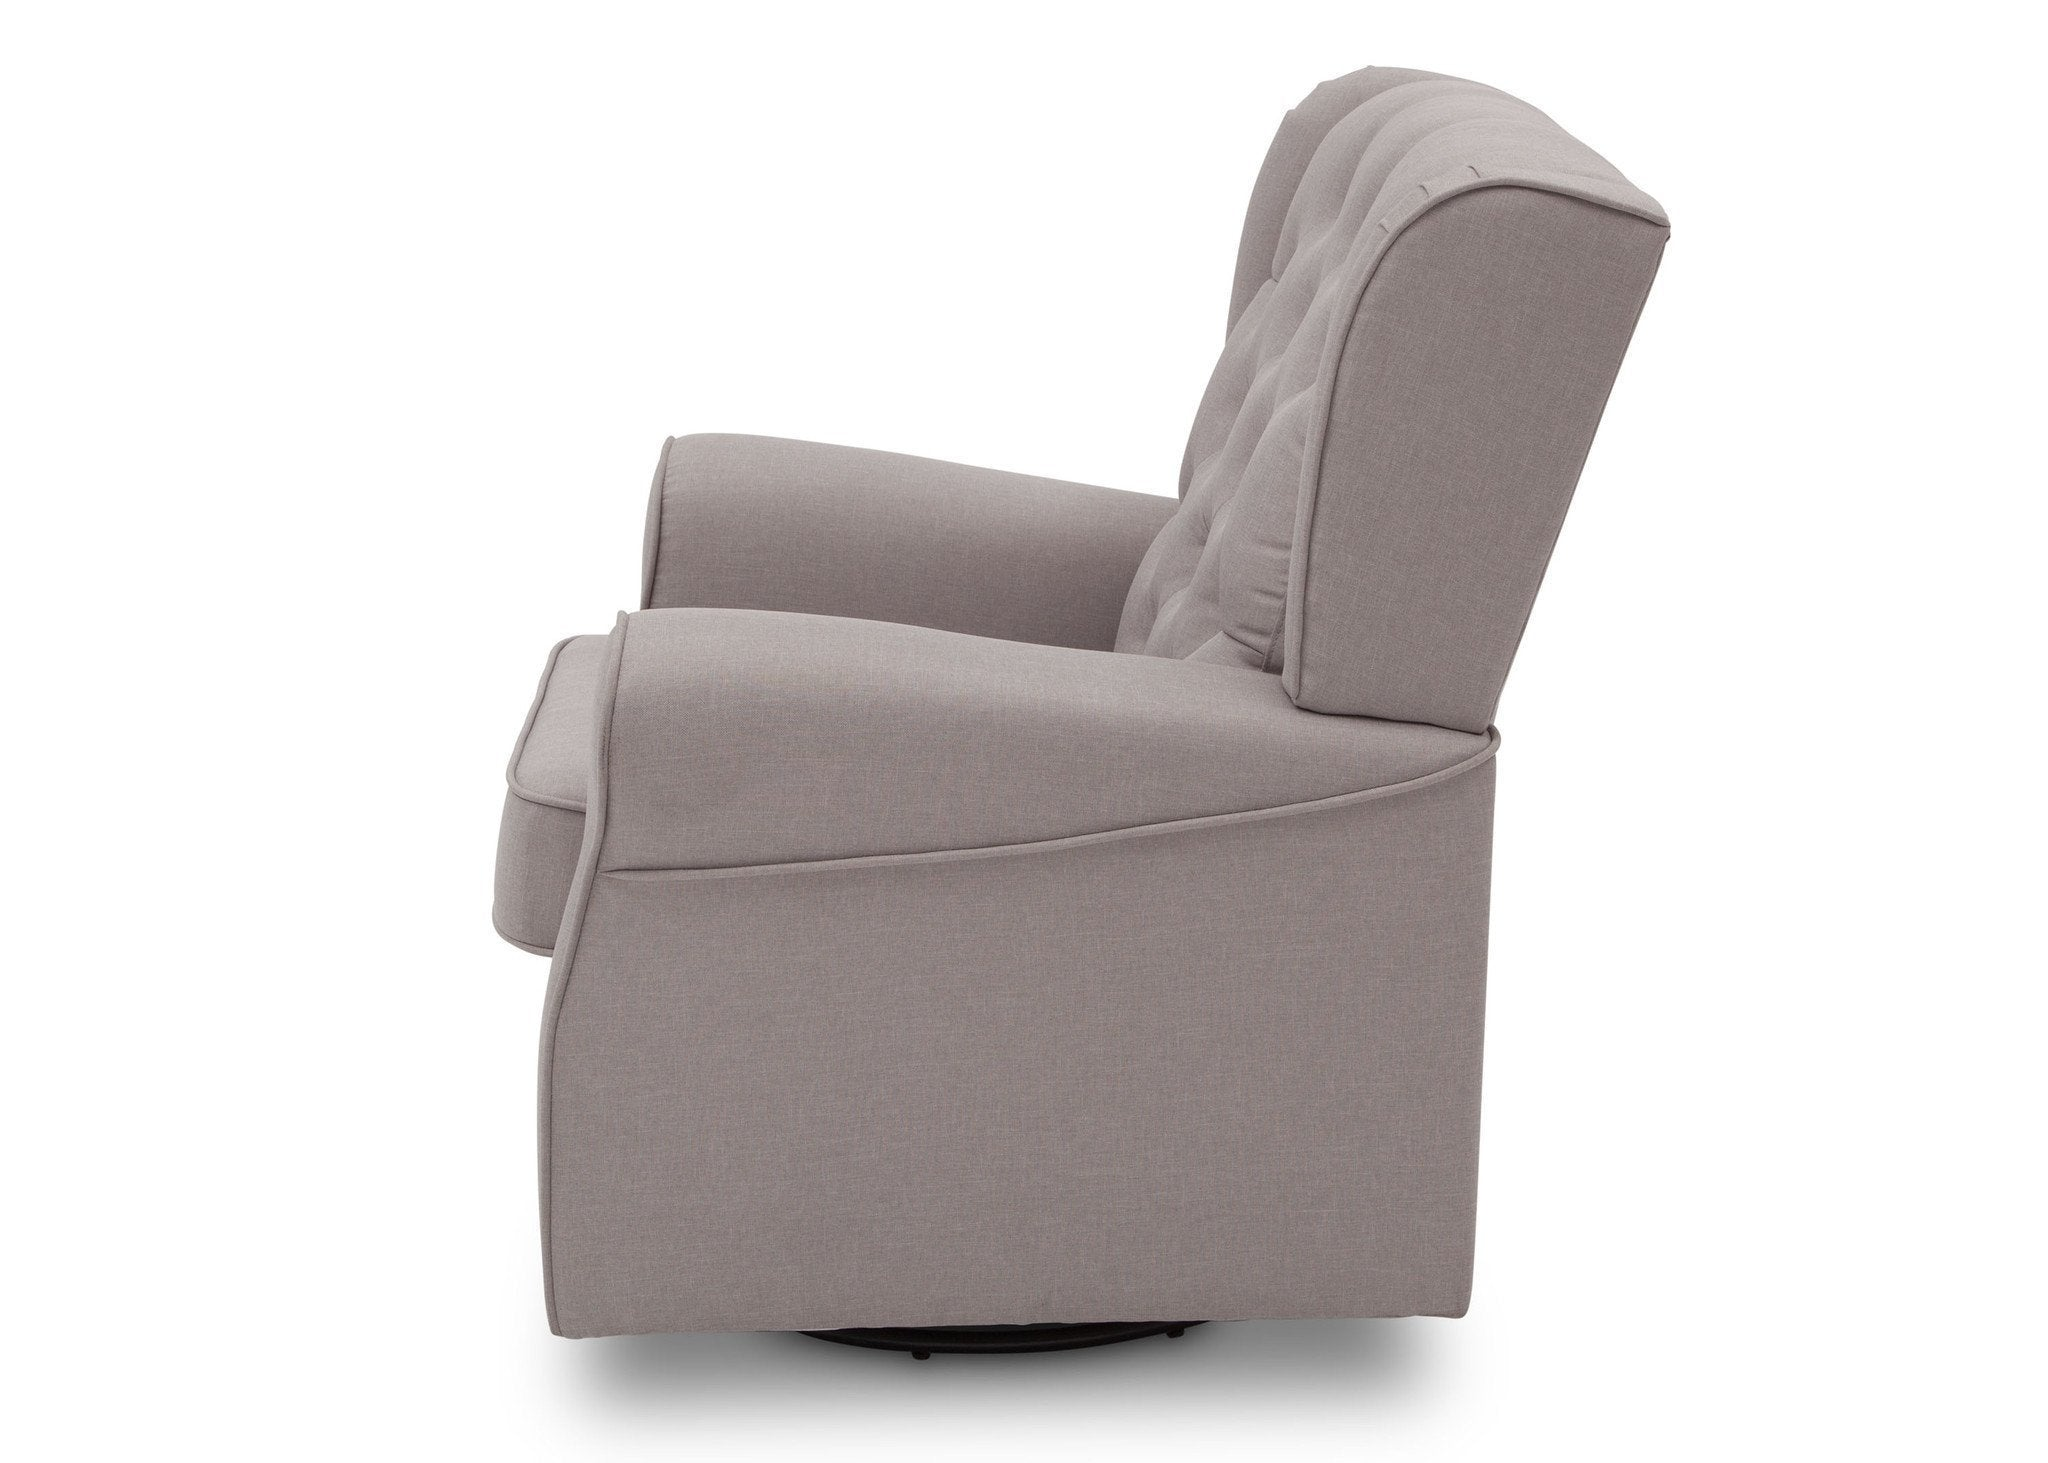 Delta Children French Grey (1304) Emma Tufted Glider, left side view, c4c